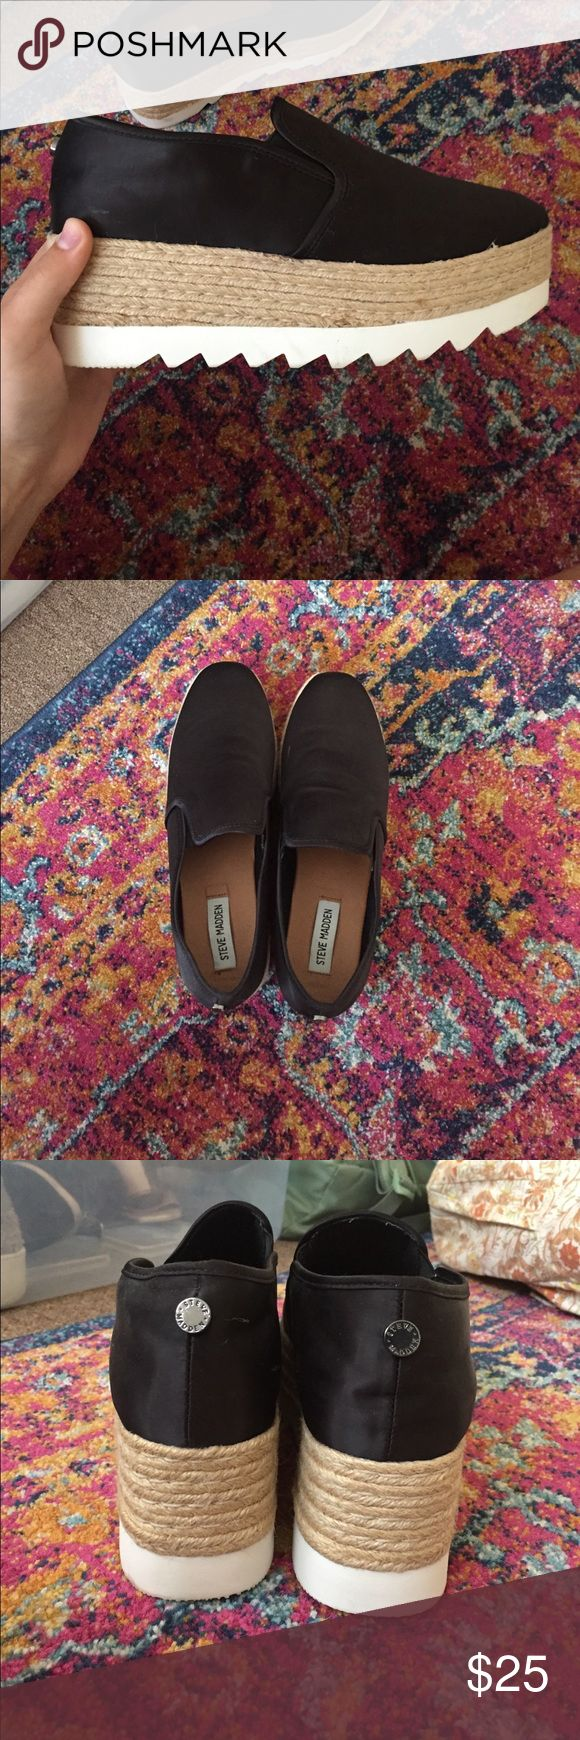 steeve madden platform espadrilles super cute/comfy steve madden platforms!! Never worn! NWOT!! taking offers!!! Steve Madden Shoes Platforms